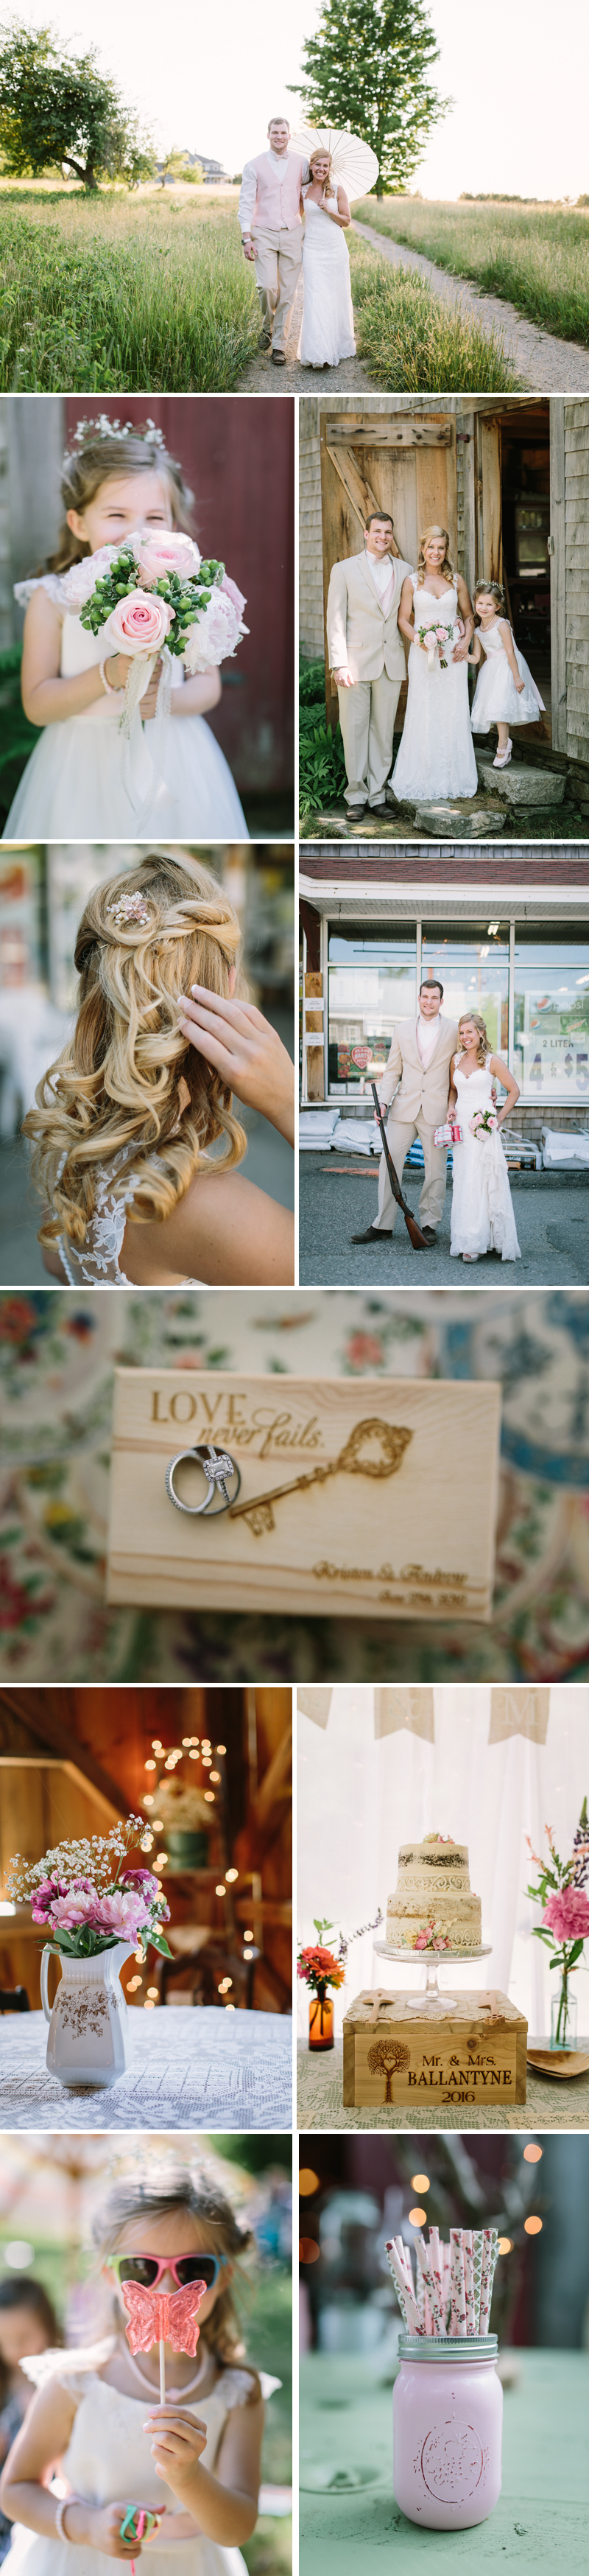 03-rustic-rural-maine-wedding-courtney-elizabeth.jpg